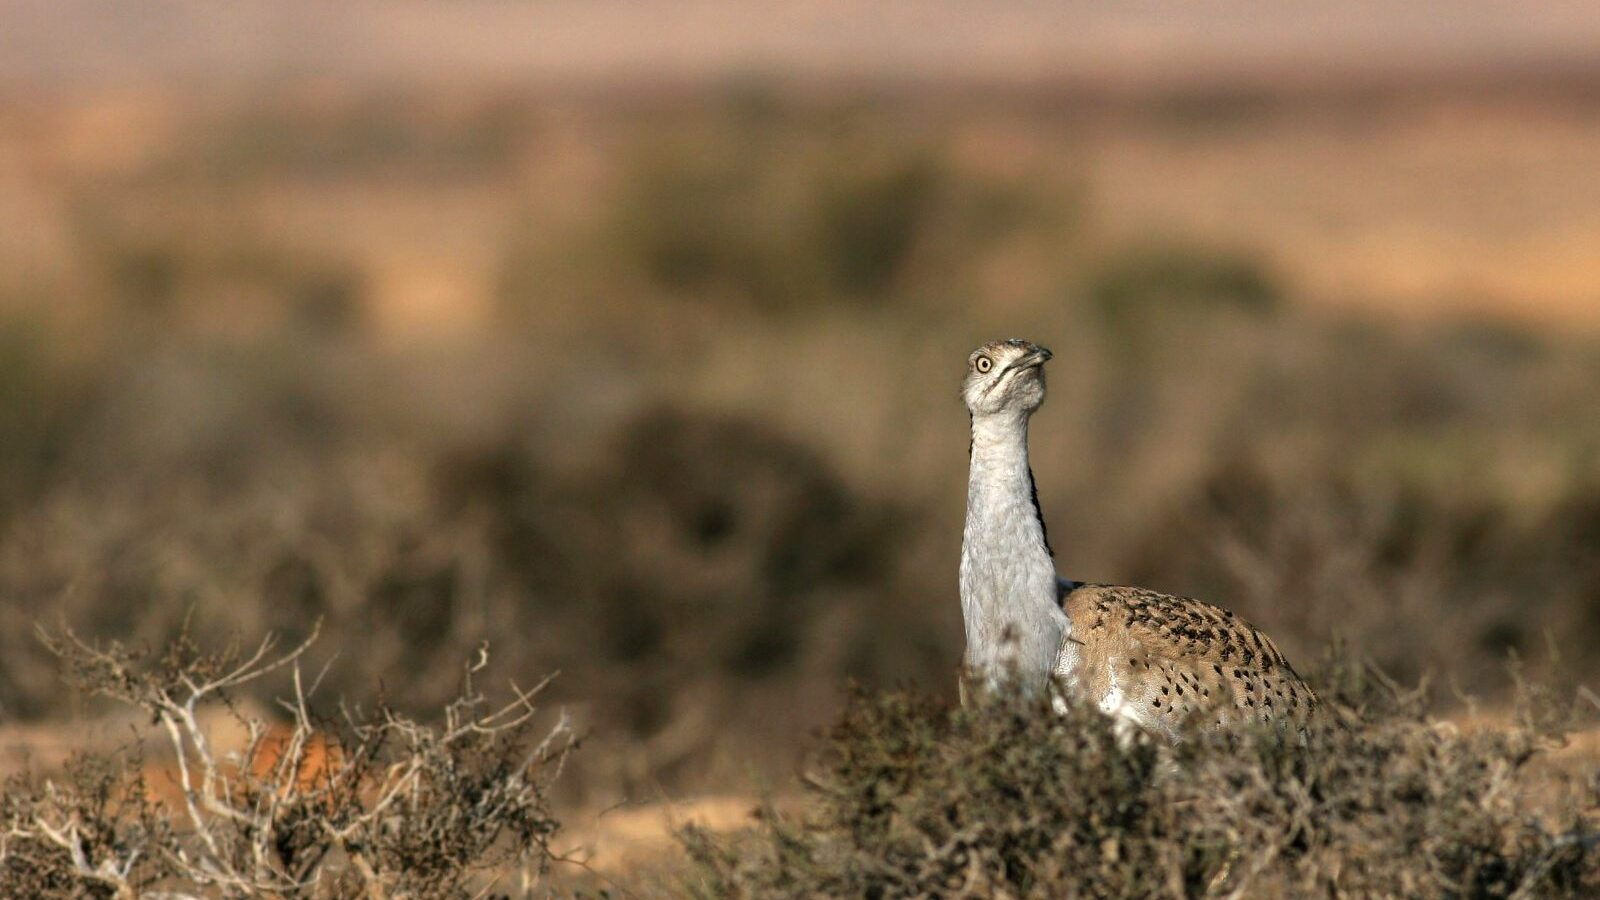 Israel And UAE Team Up To Preserve Rare Desert Bird Species